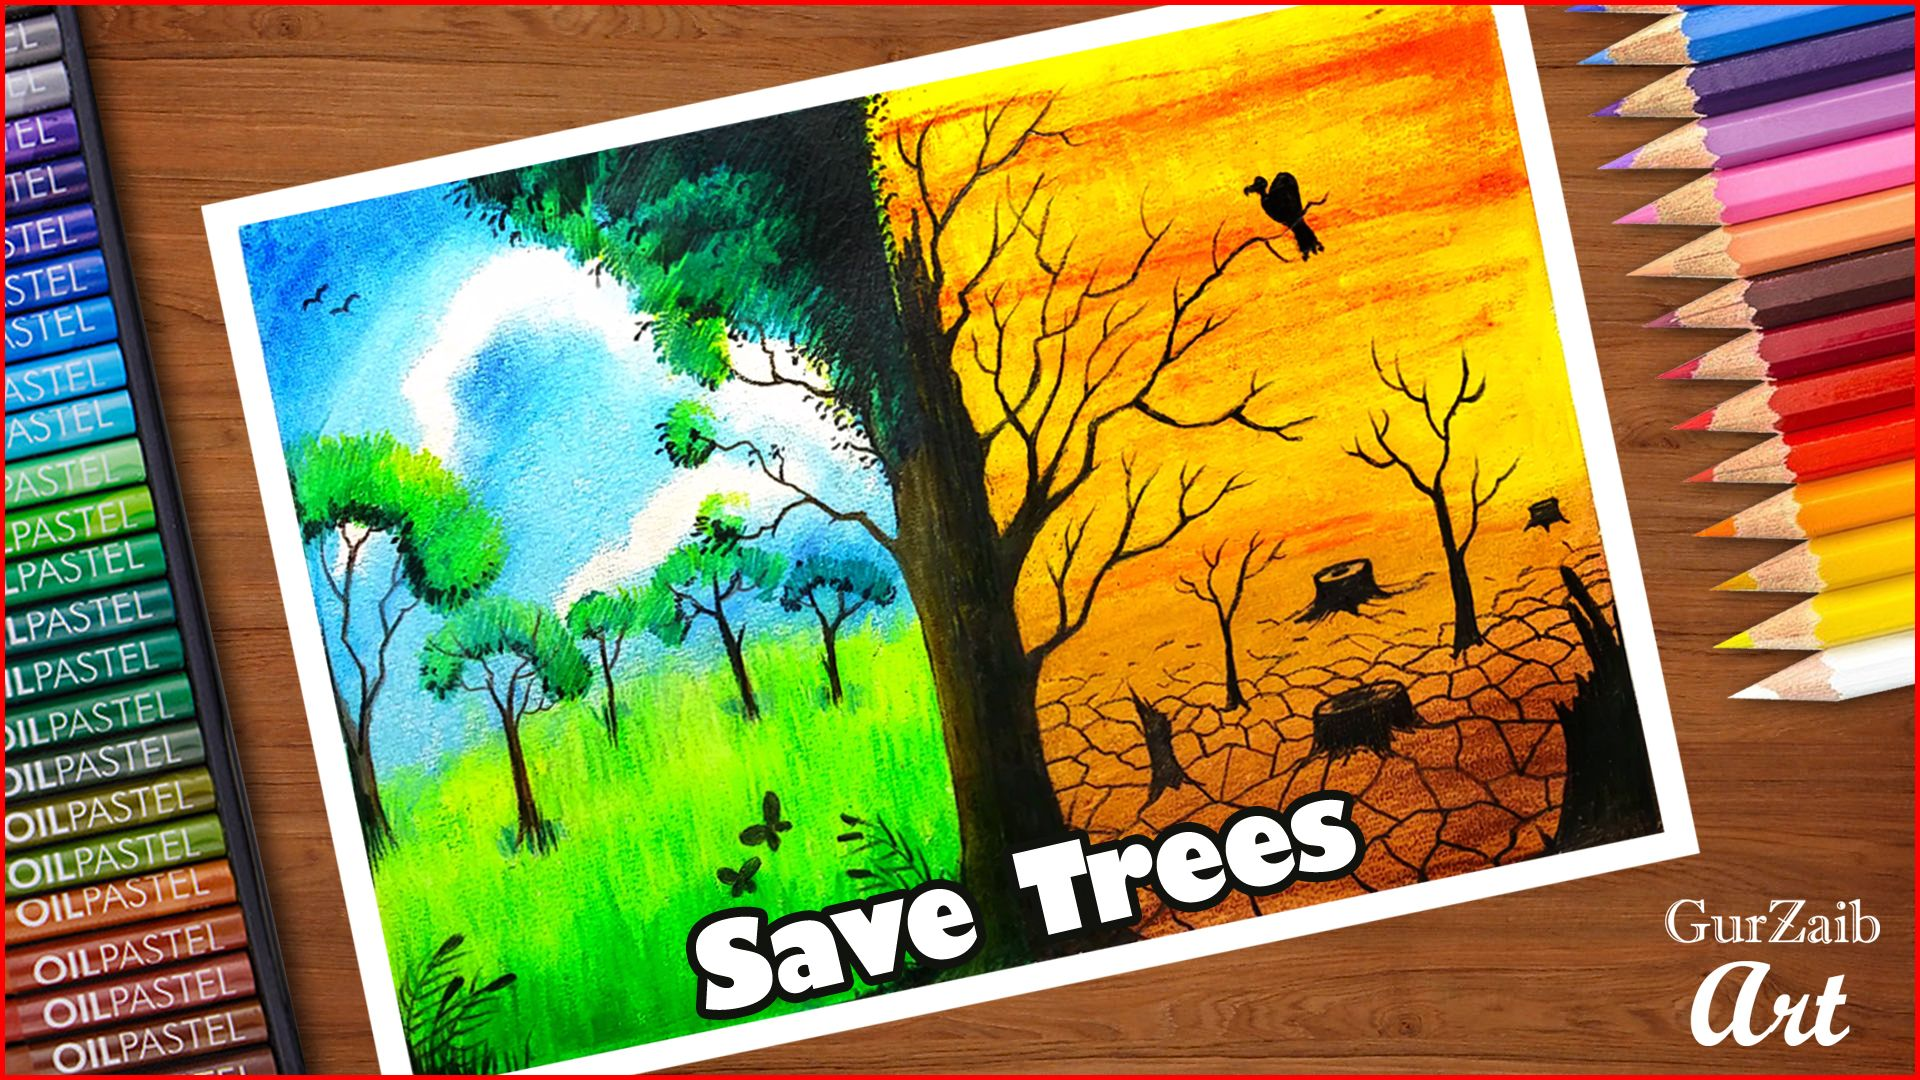 How To Draw Save Trees Poster Chart For School Students Very Easy